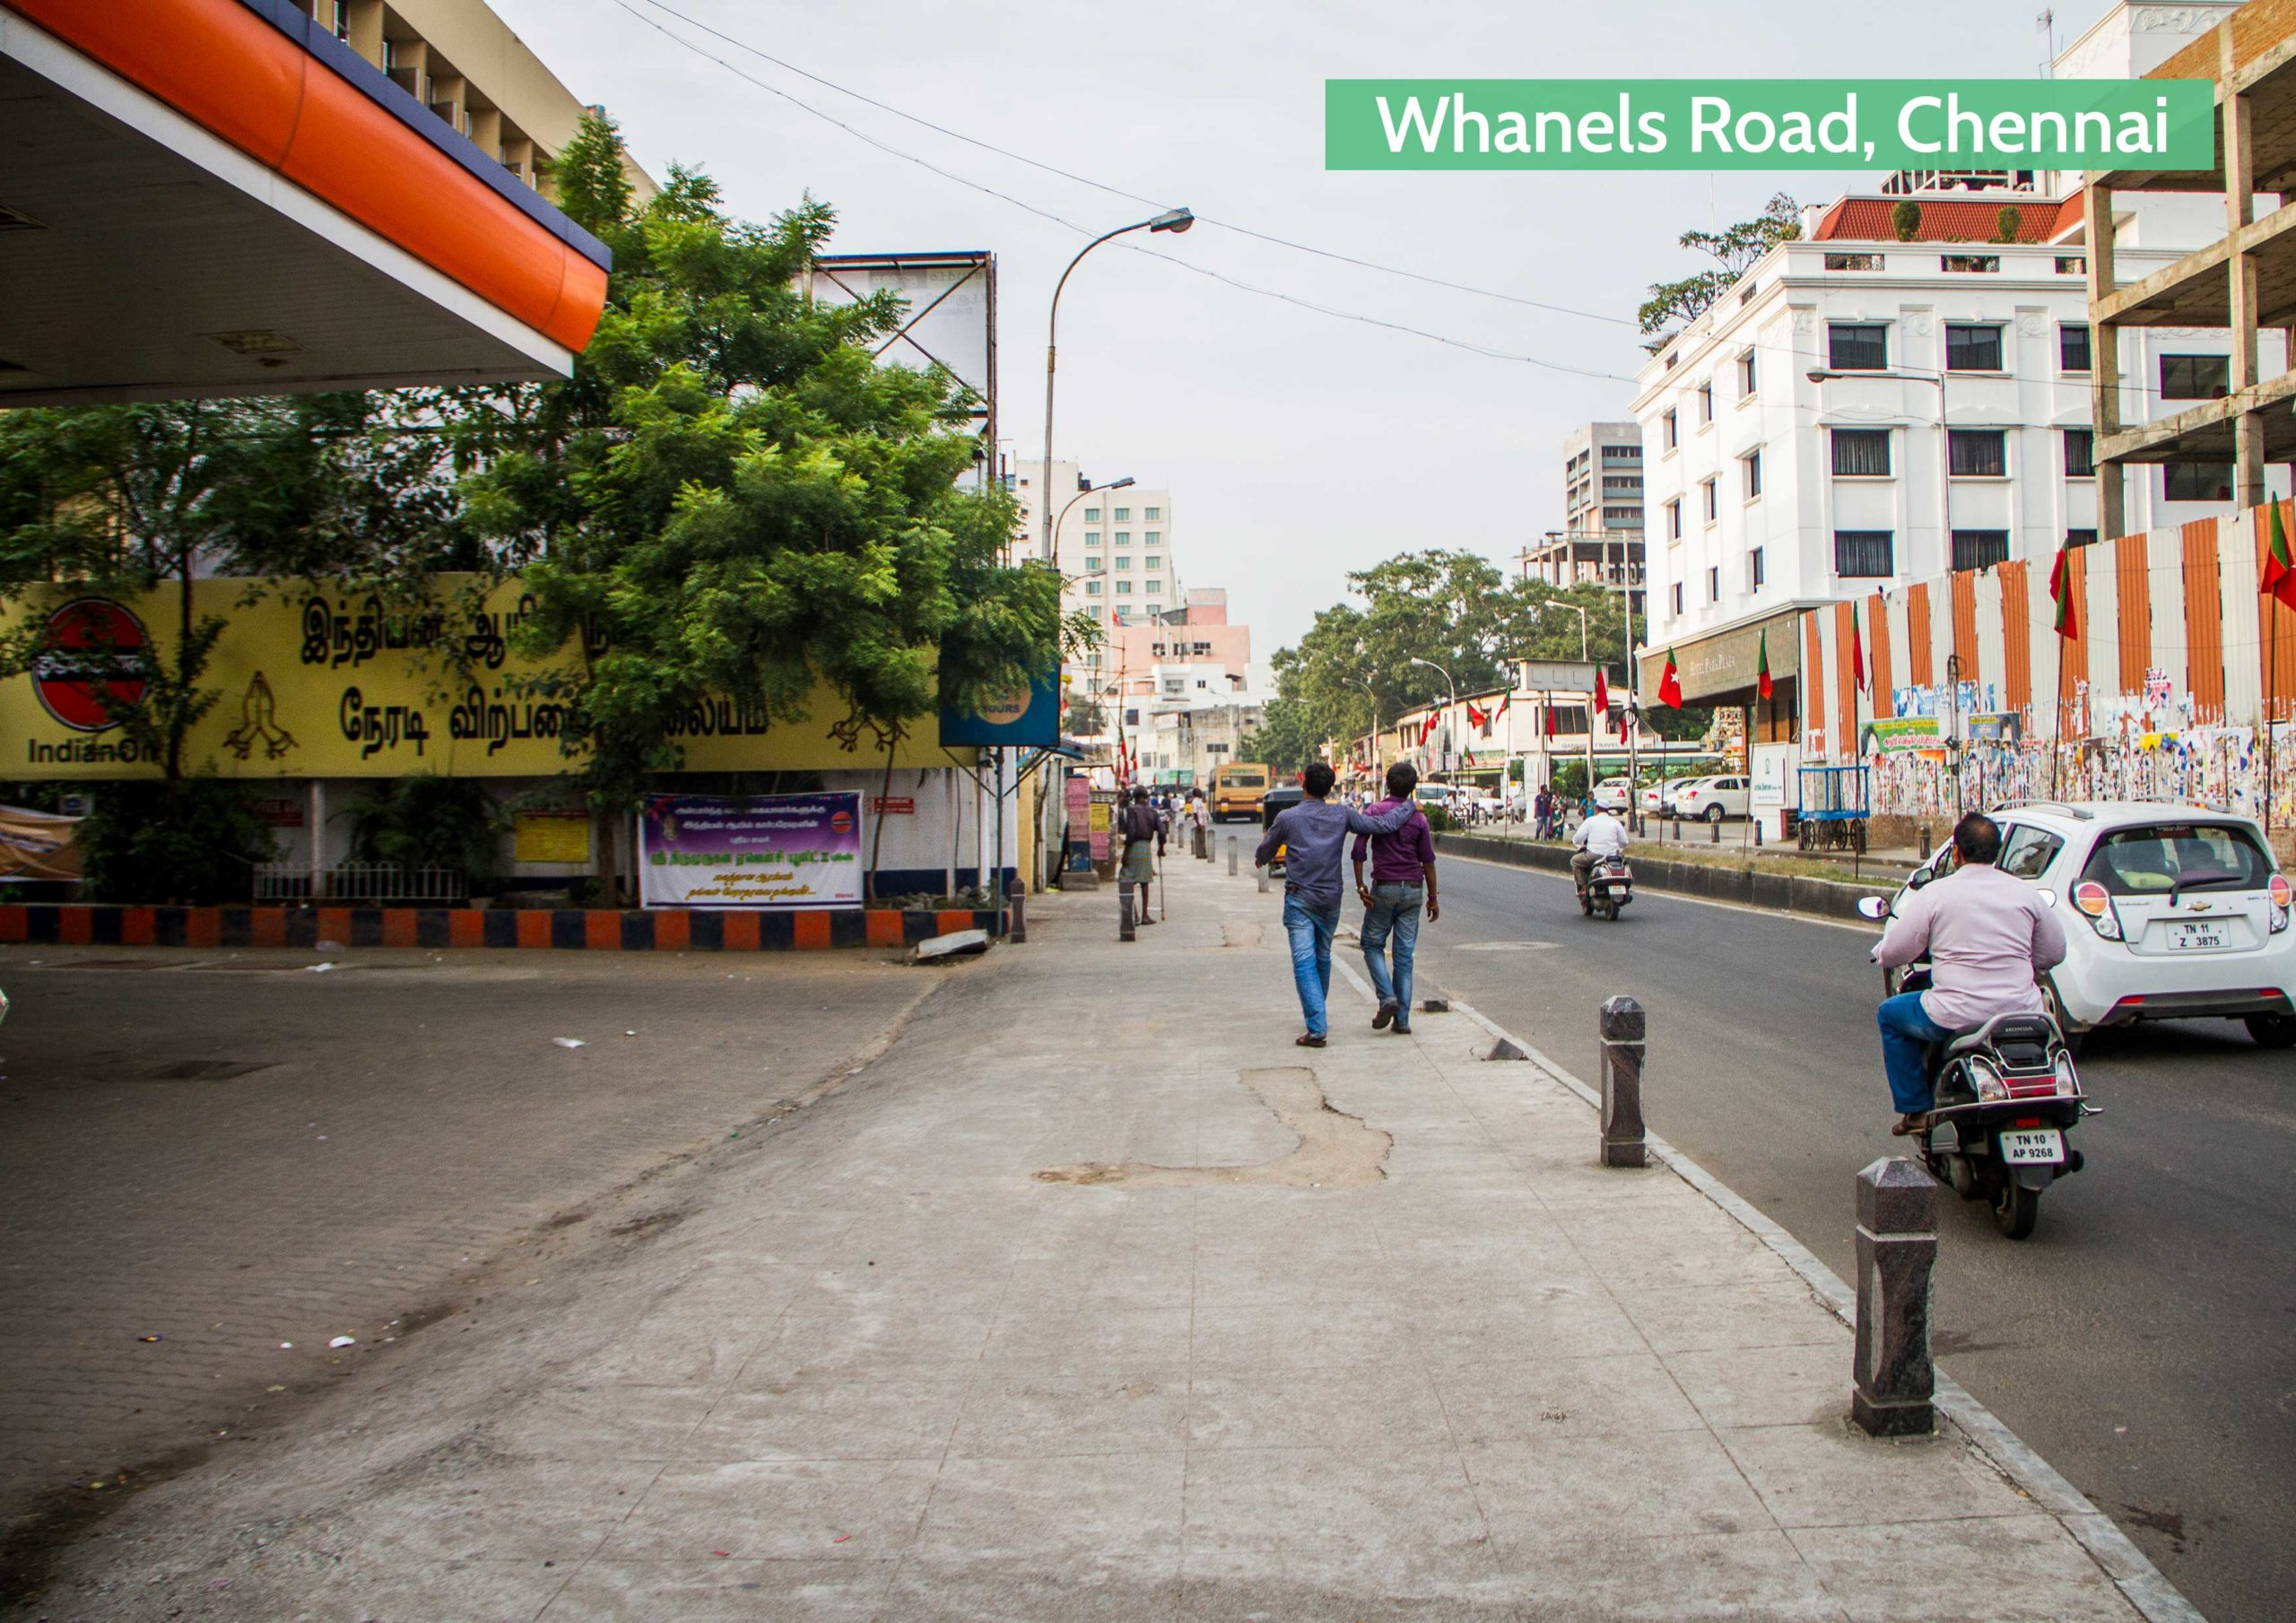 After-The transformation of Chennai's streets